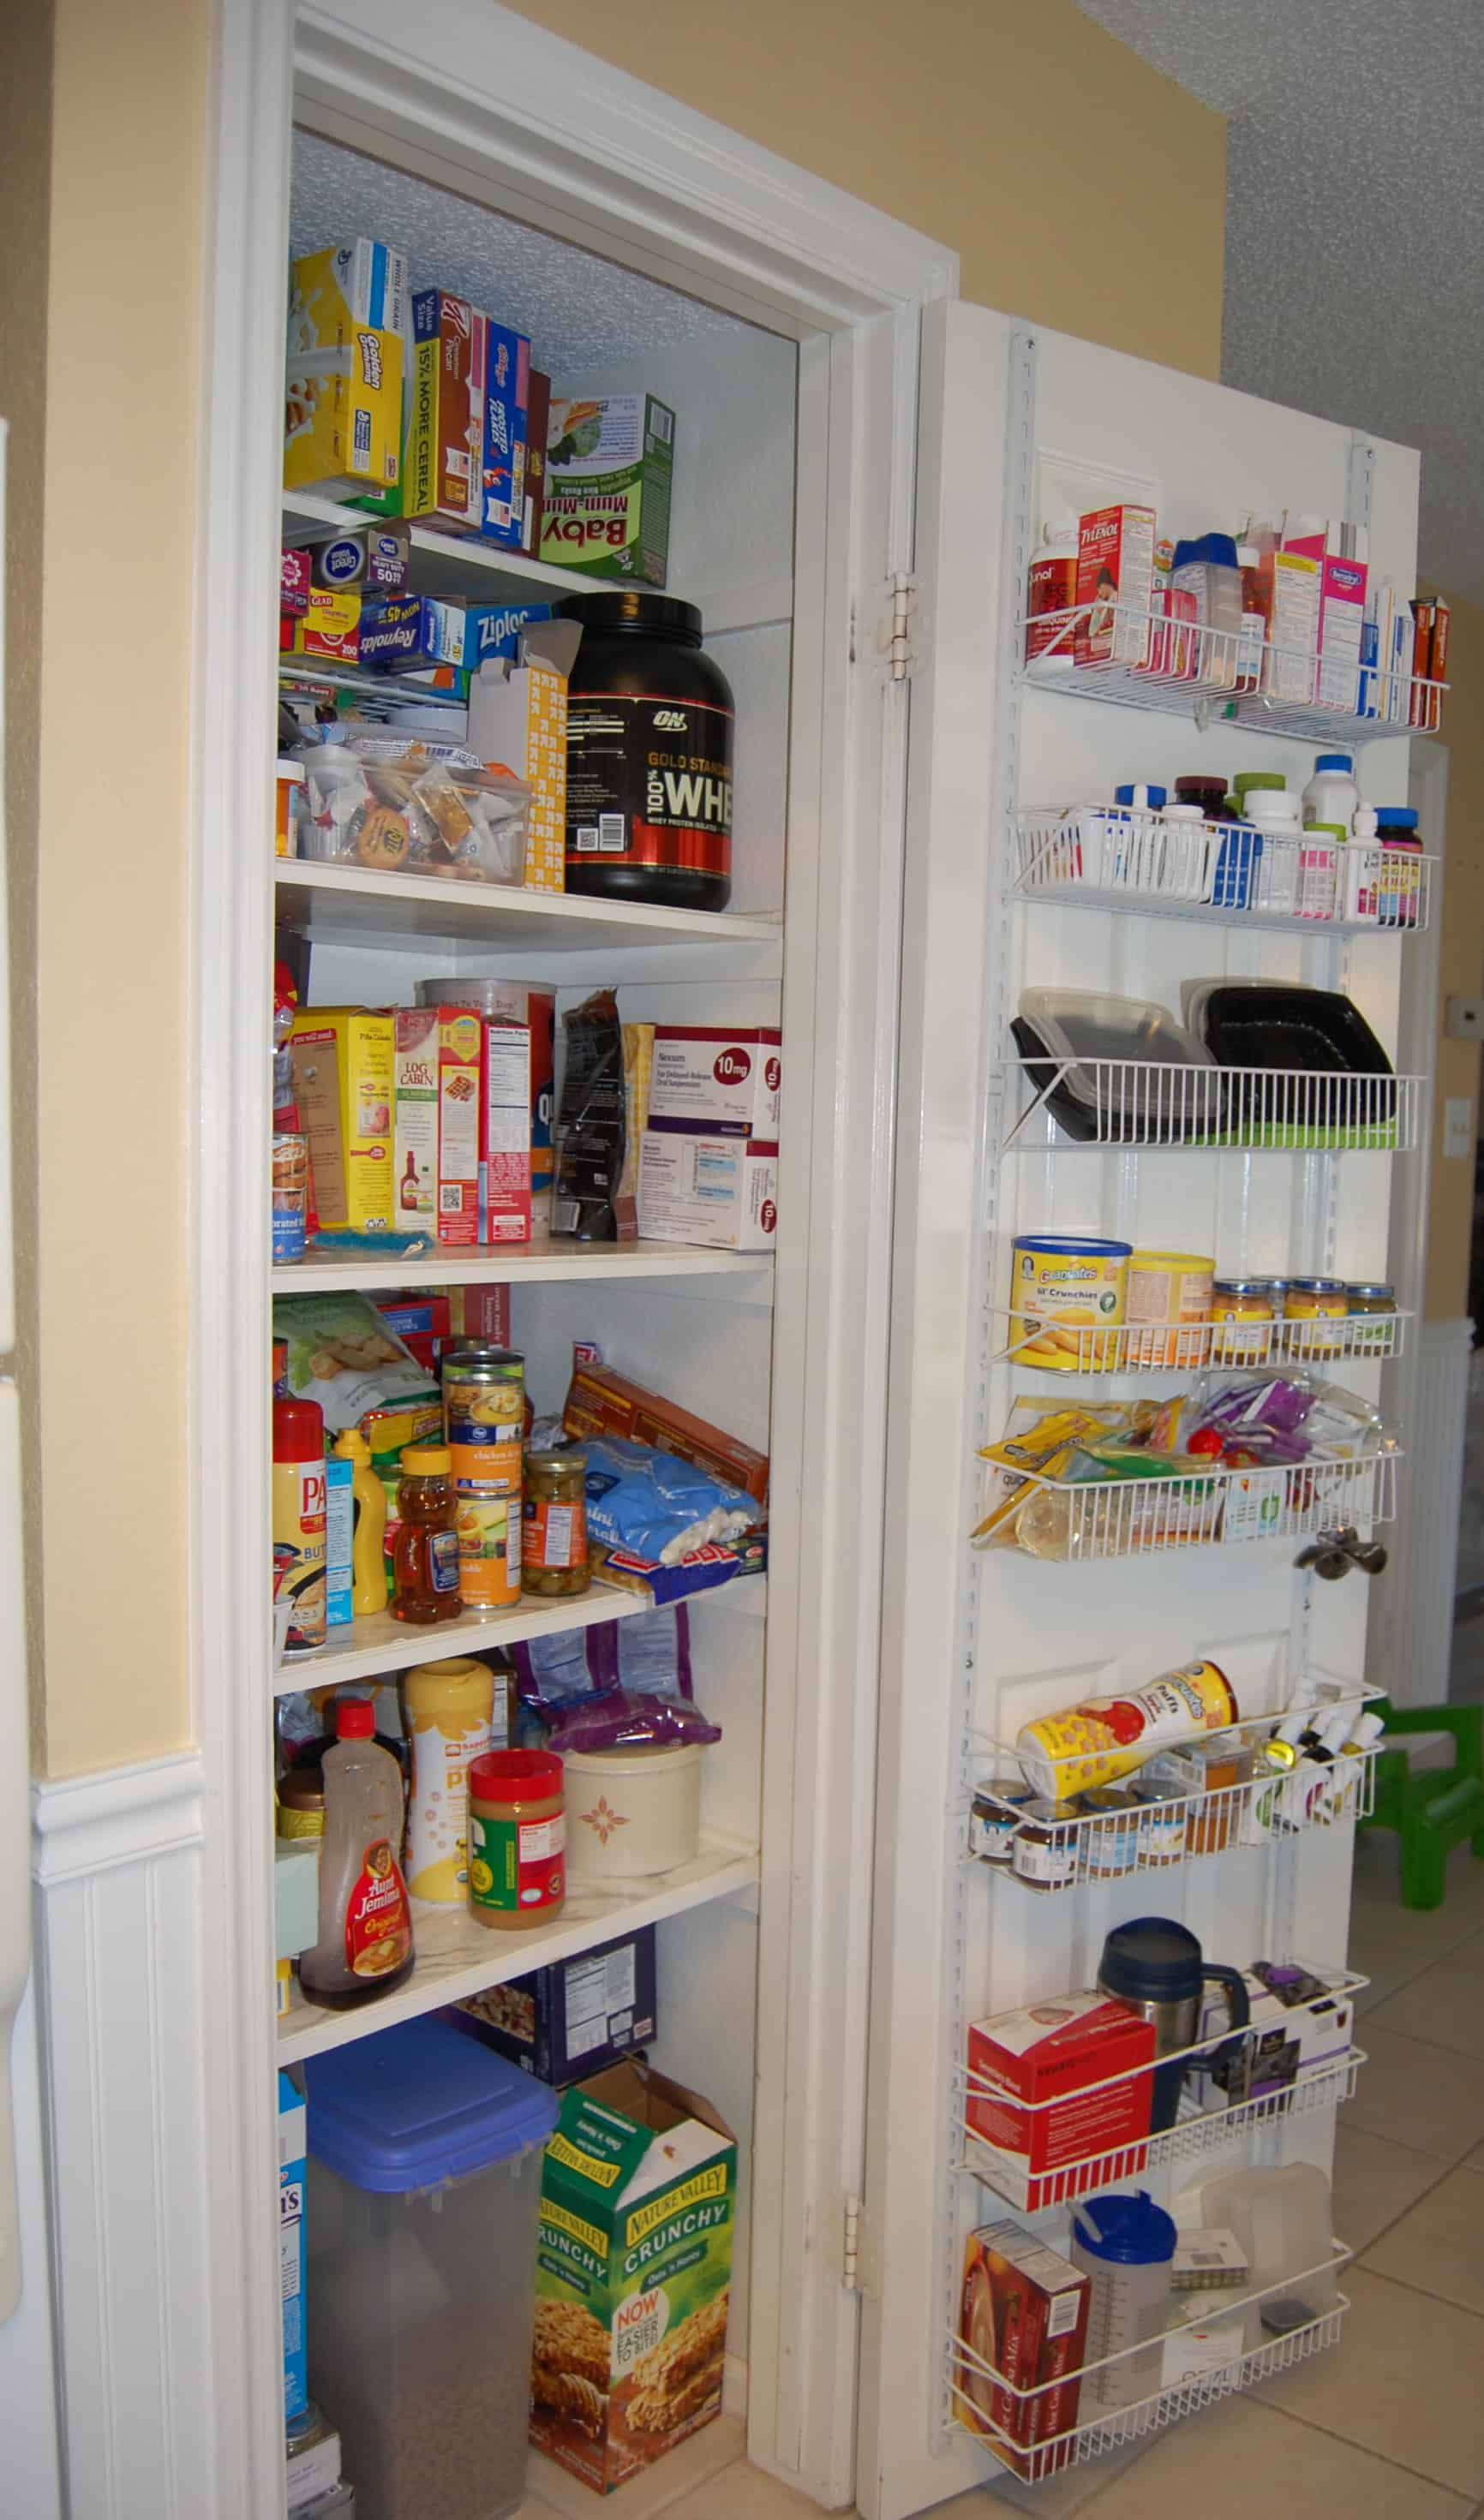 Step by step guide to organizing any space Step By Step